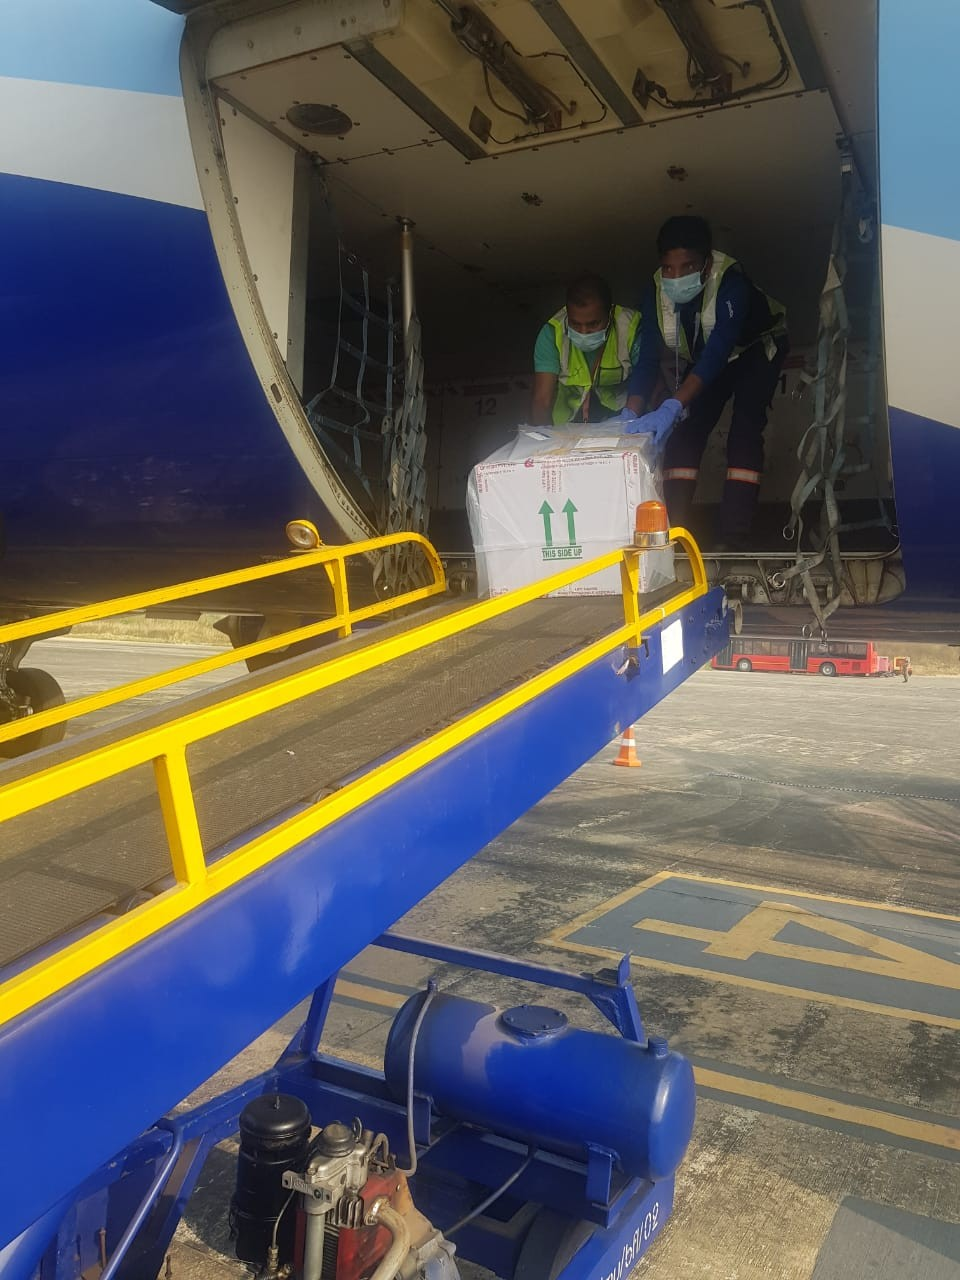 The first consignment of COVID-19 vaccine being unloaded at the Dimapur Airport on January 14. A total of 26500 doses of Covishield vaccine were delivered in the first phase. (@HealthNagaland/Twitter)